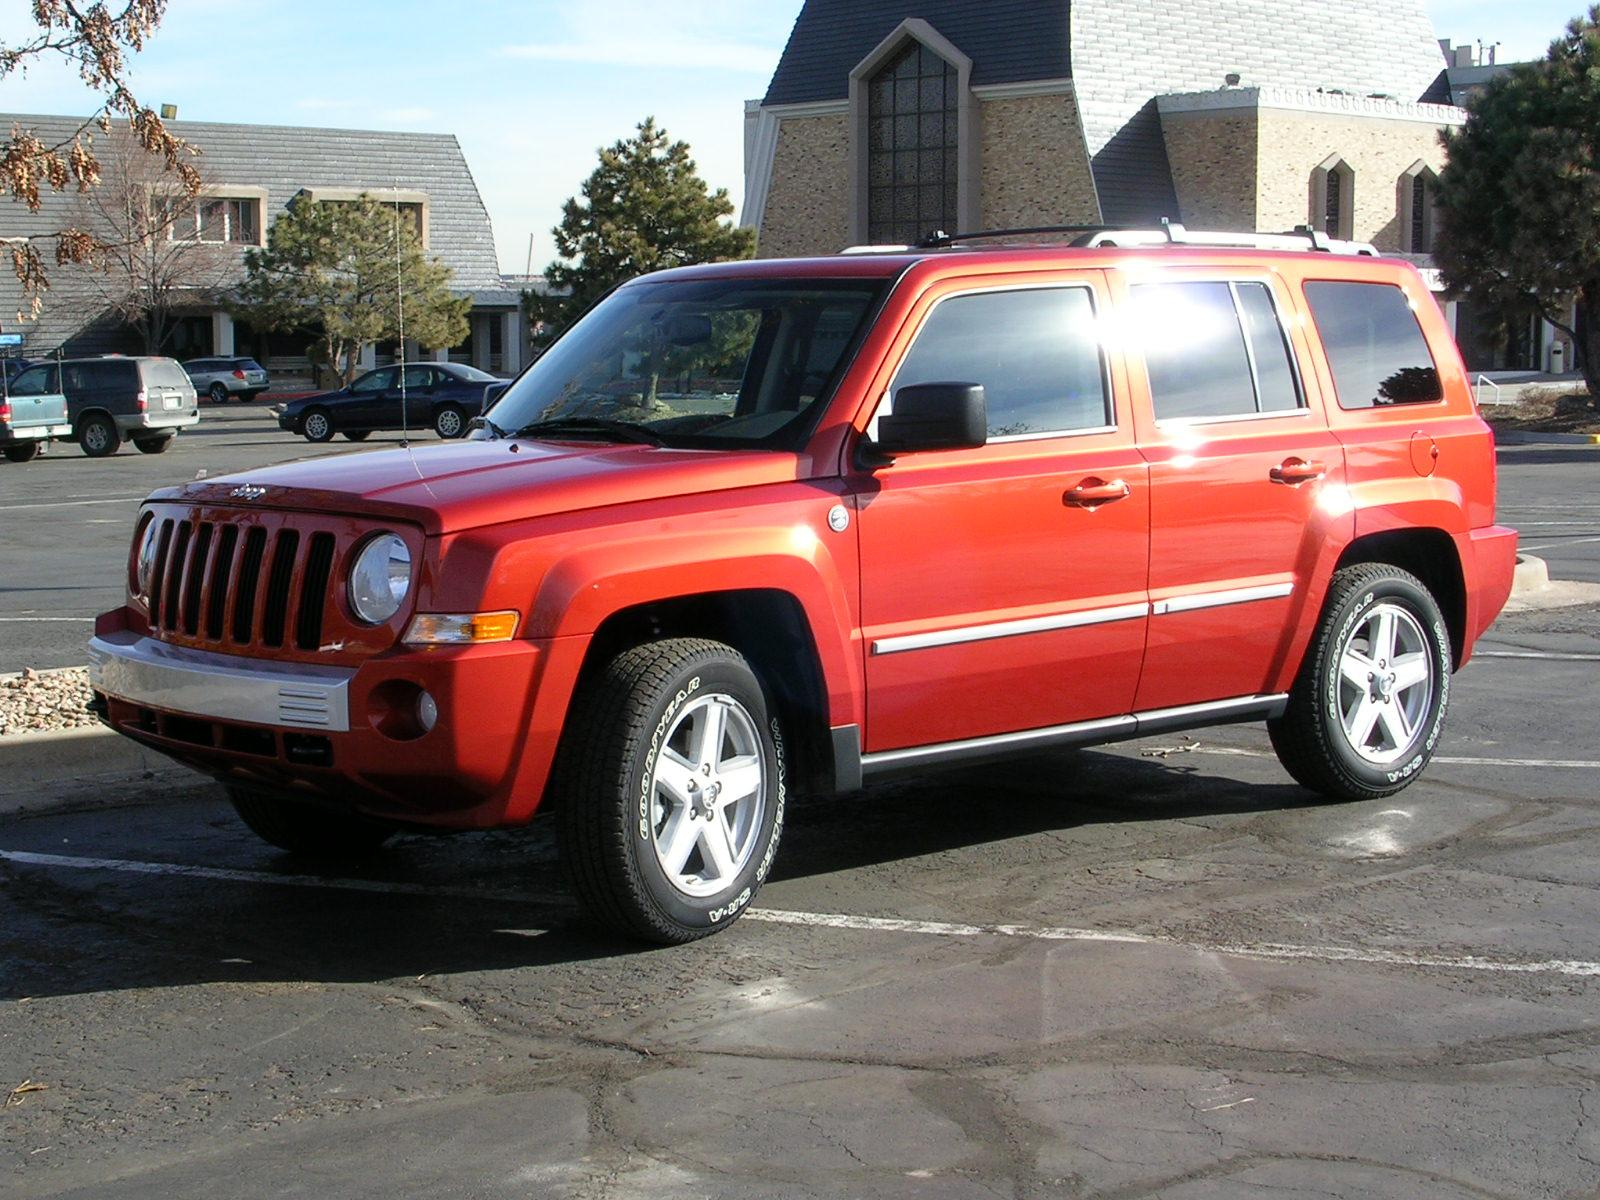 2010 jeep patriot information and photos zombiedrive. Black Bedroom Furniture Sets. Home Design Ideas